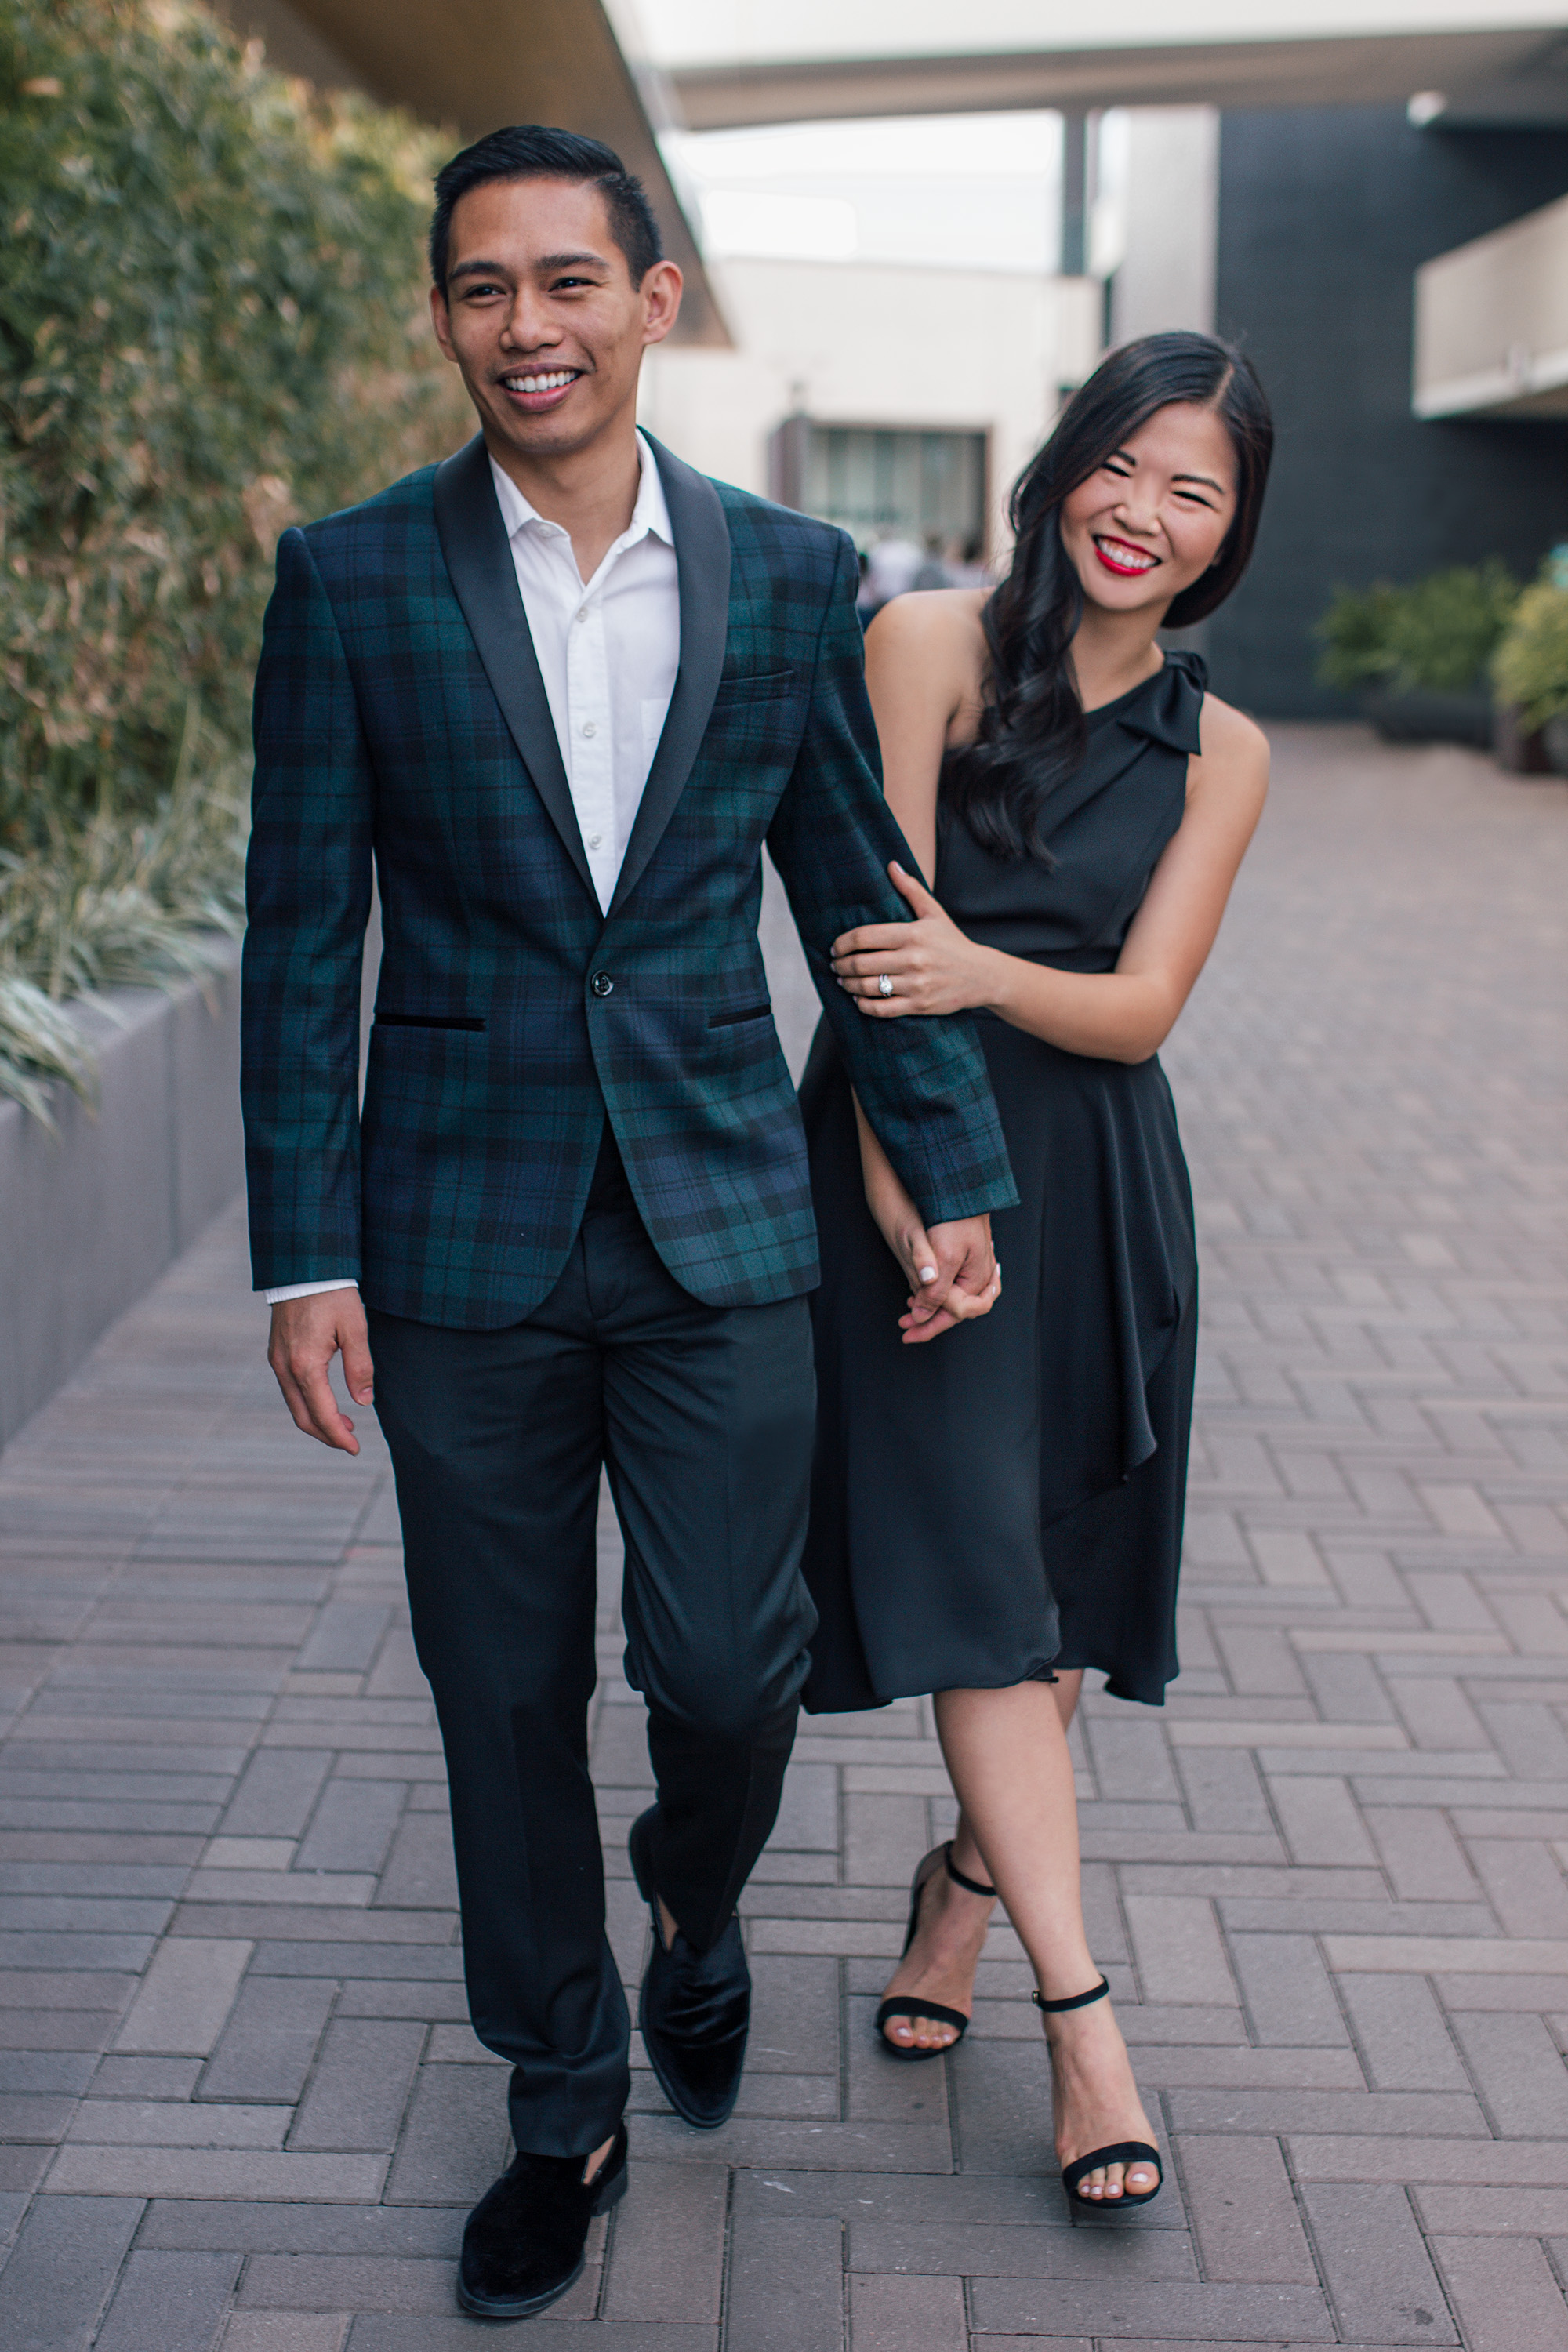 Men's Plaid Tuxedo and One Shoulder Black Dress